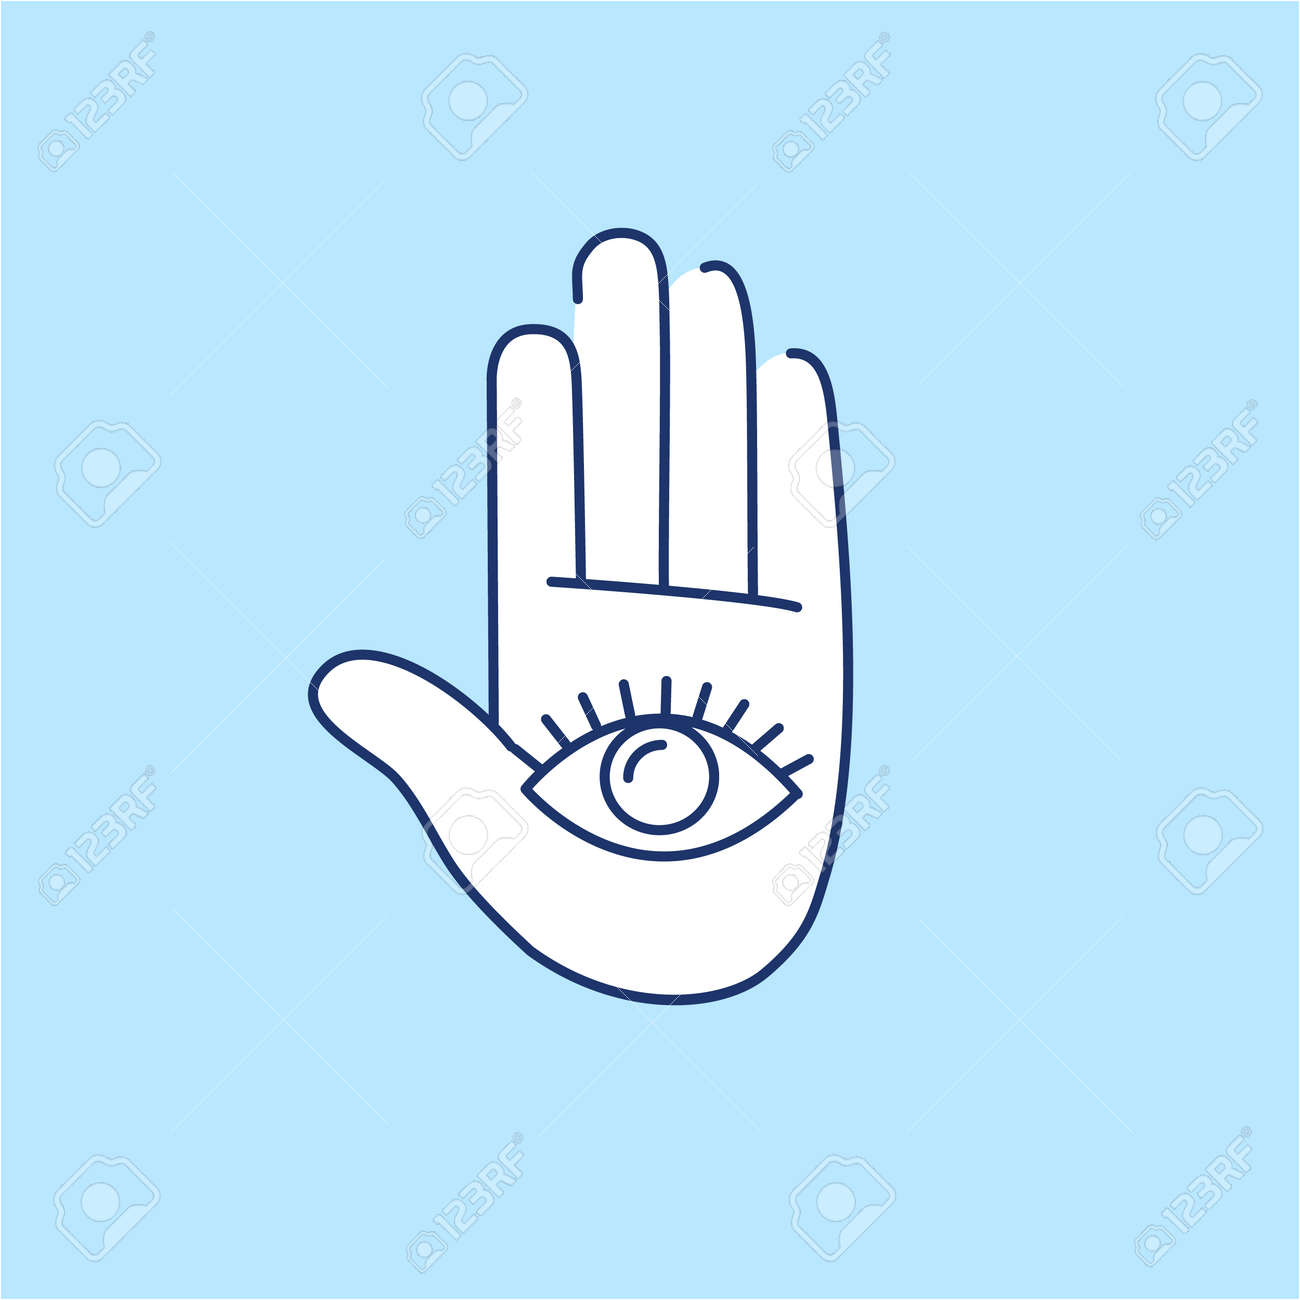 Eye in open hand palm white linear icon on blue background eye in open hand palm white linear icon on blue background flat design alternative healing buycottarizona Image collections